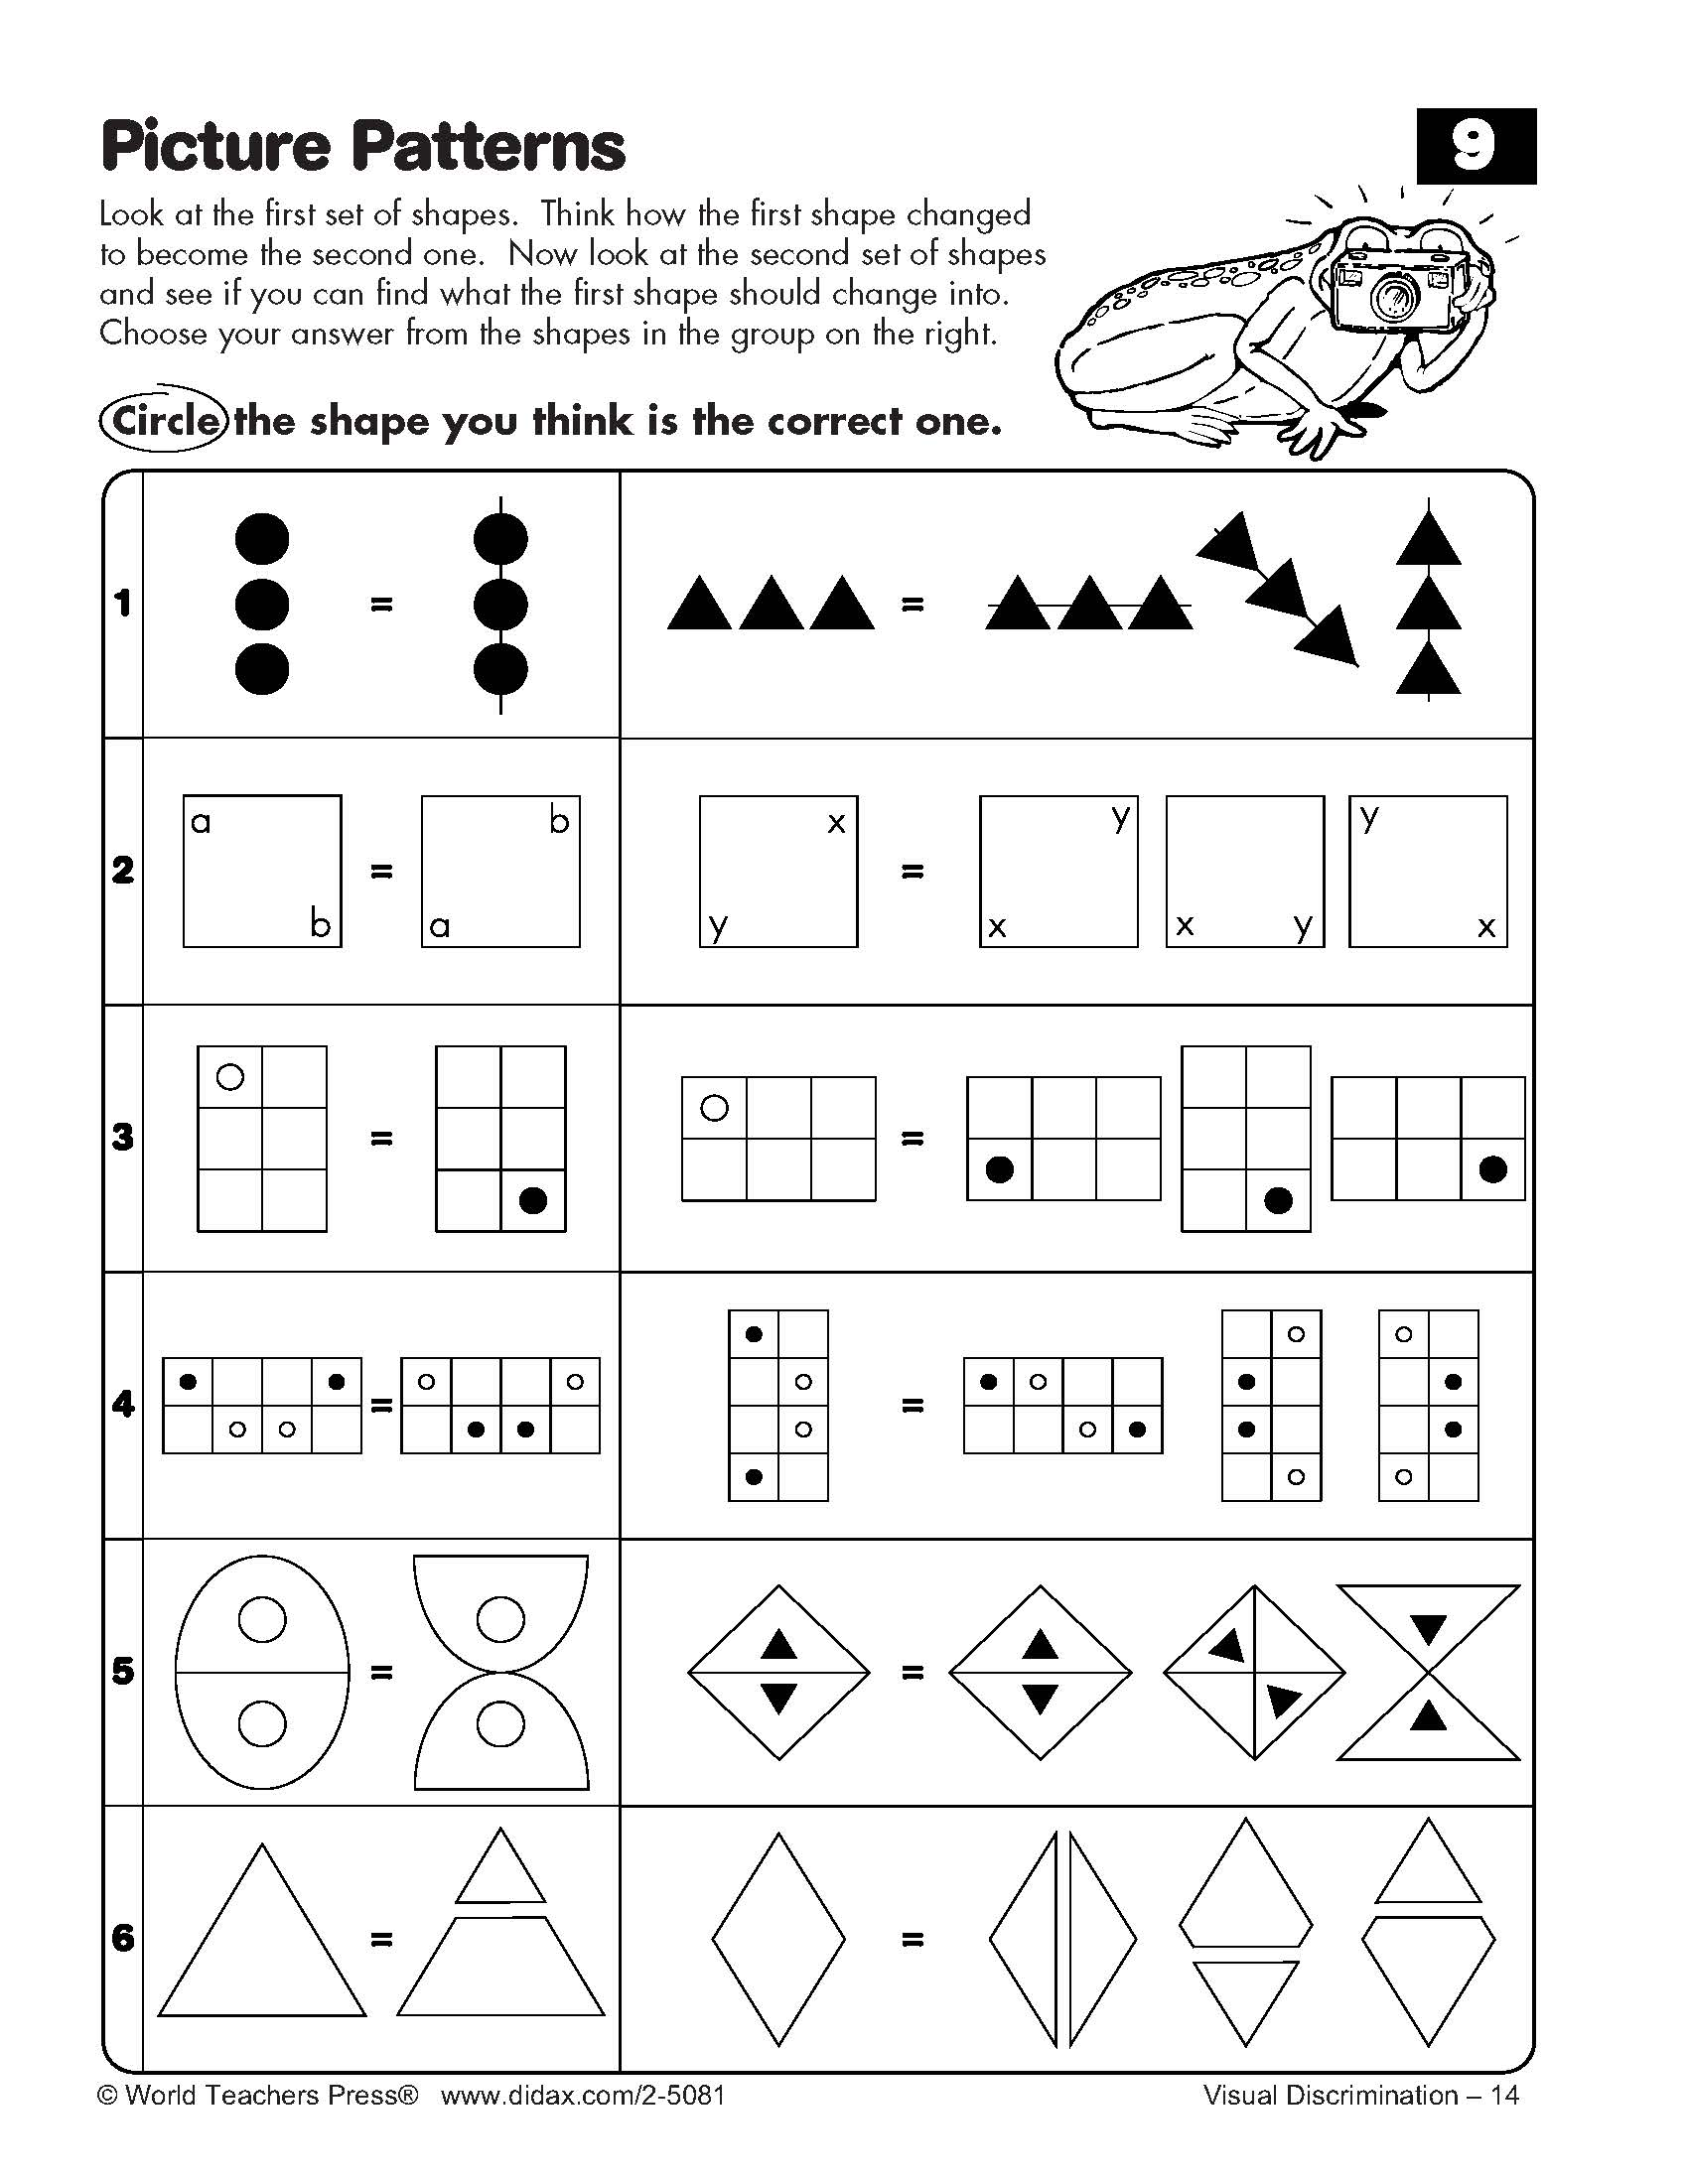 Worksheets Visual Discrimination Worksheets visual discrimination worksheet worksheets spring preschool activities preschool